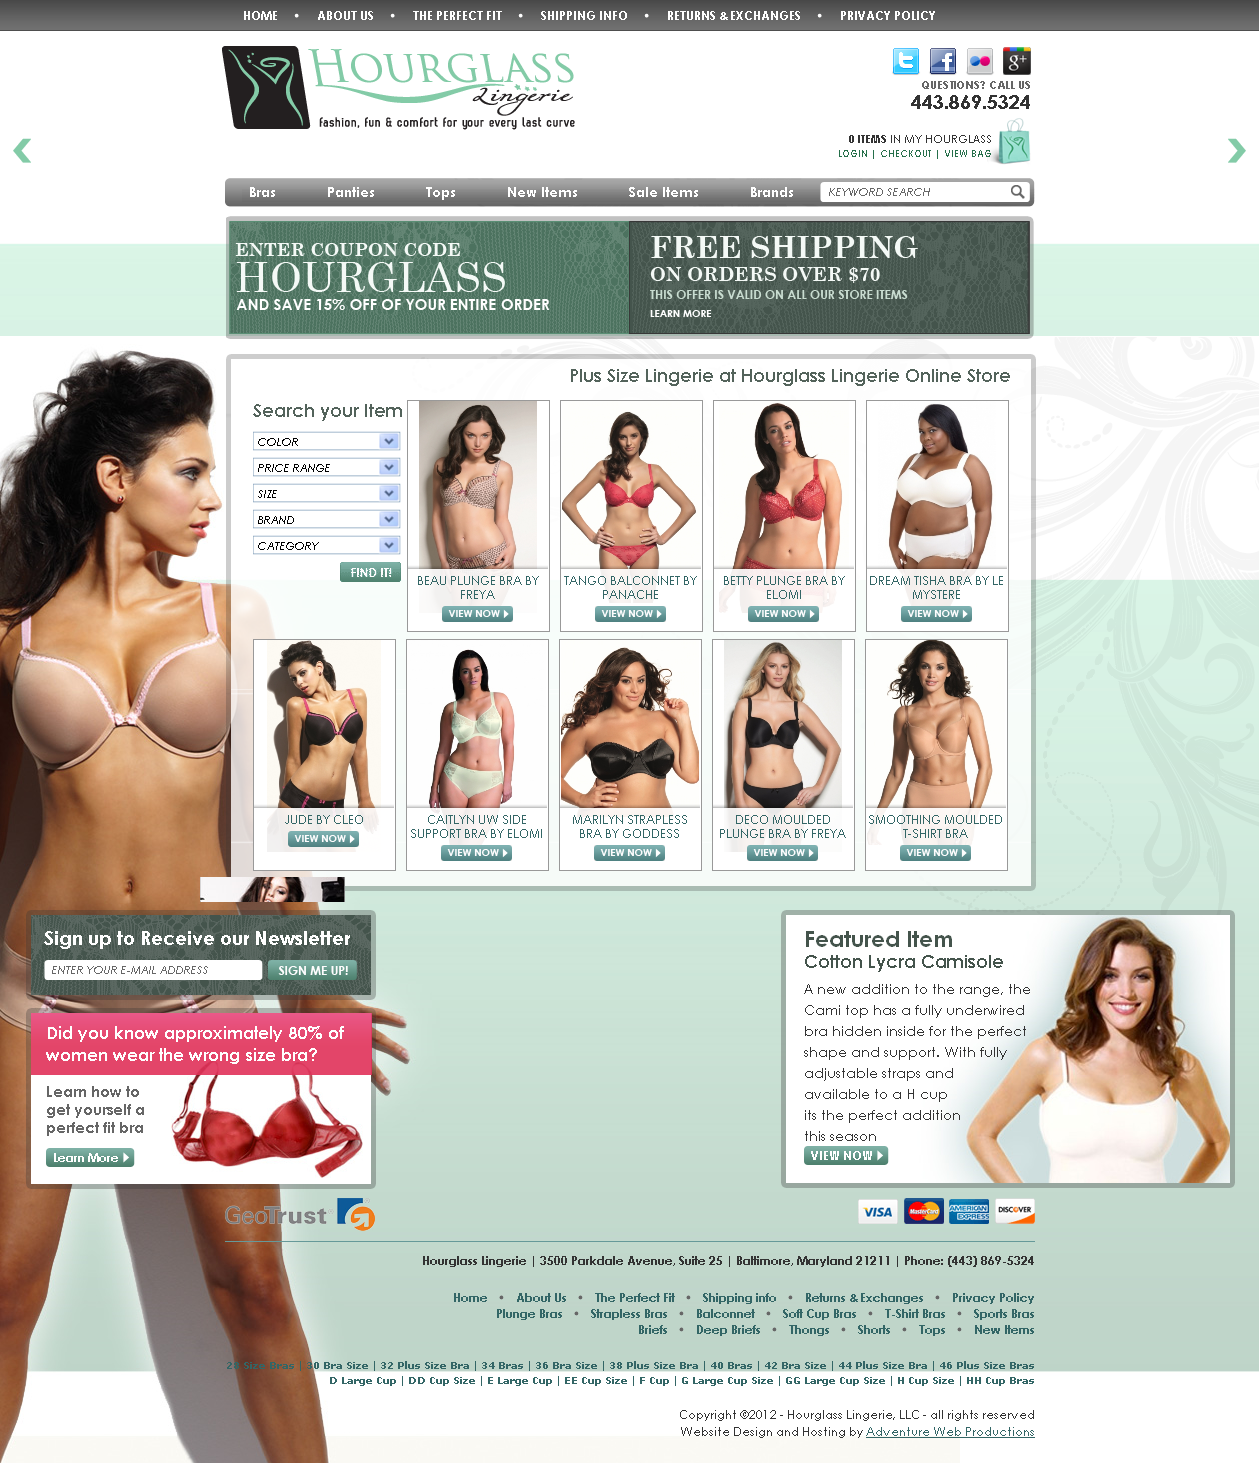 Adventure Web Productions has recently launched Hourglass Lingerie's new live site!